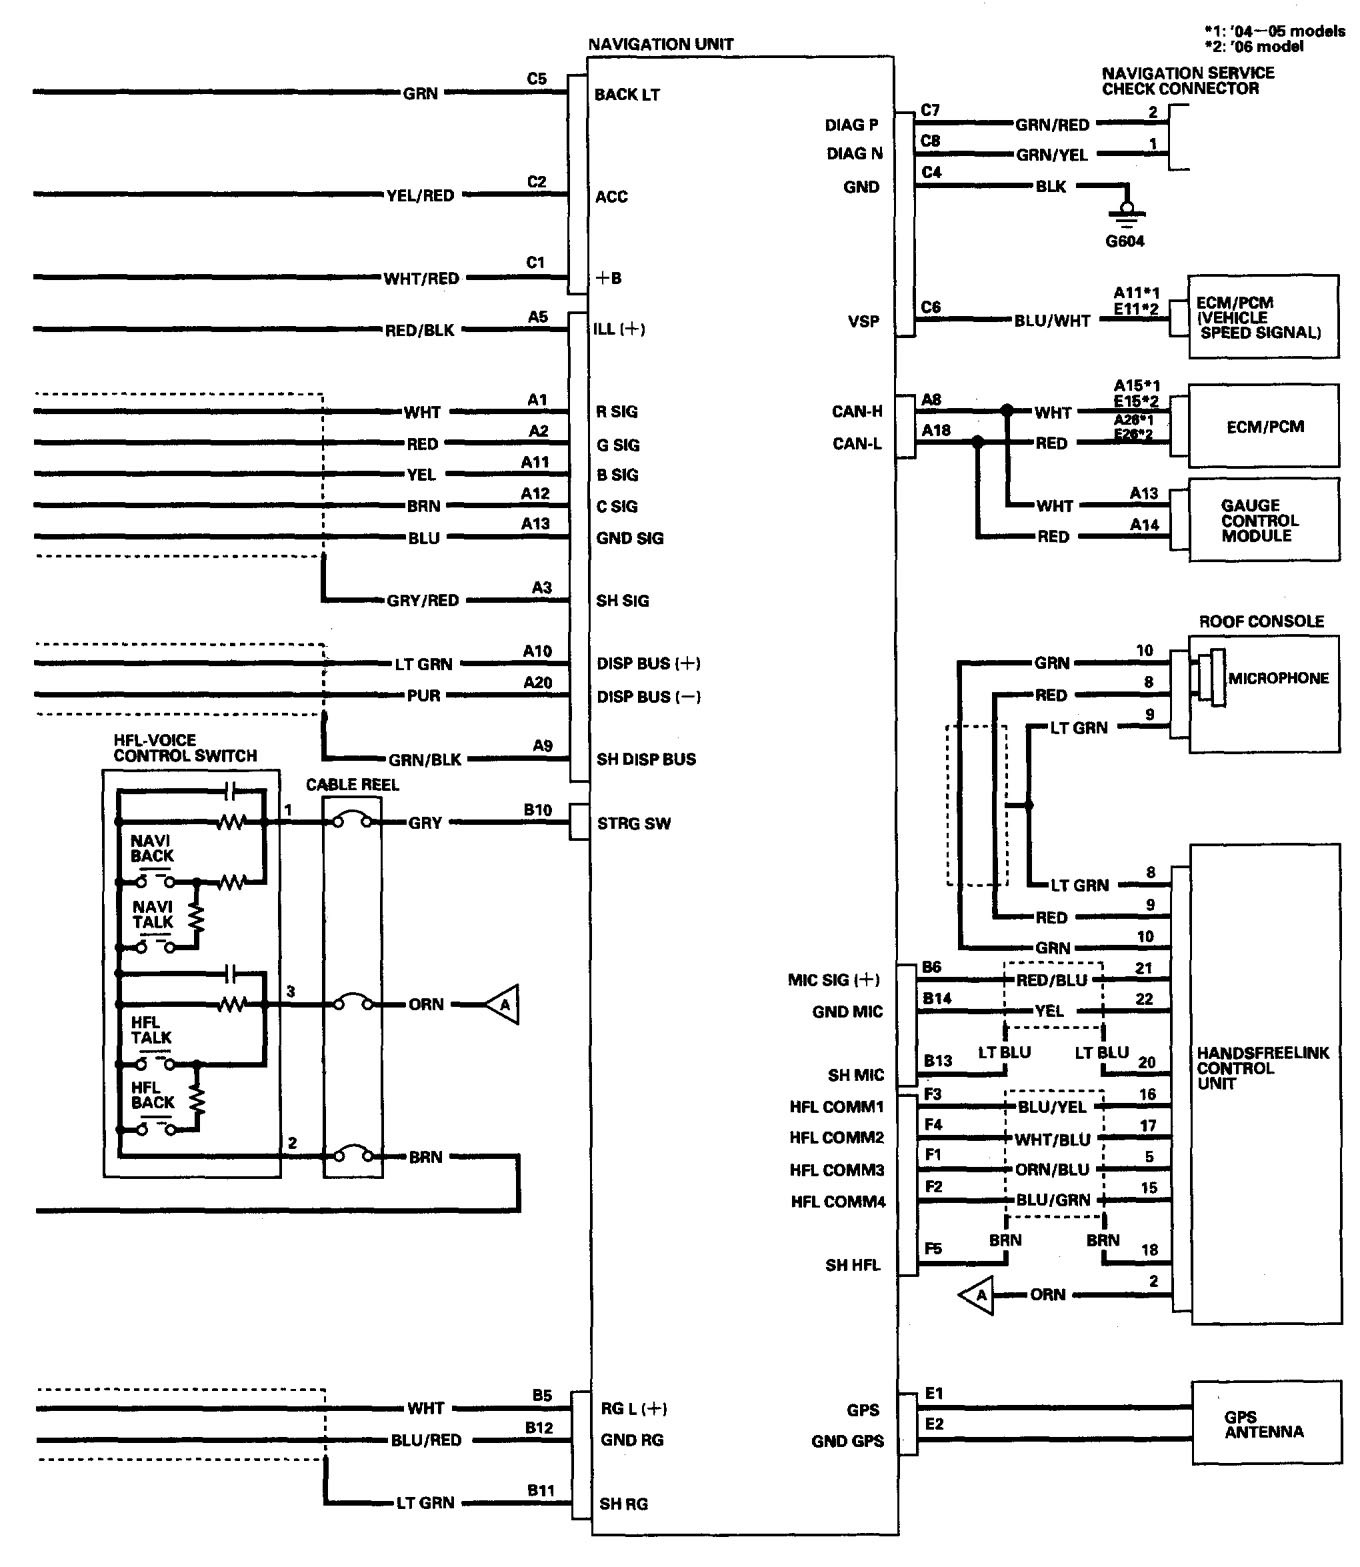 hight resolution of wrg 6251 2009 acura tl fuse diagram wiring schematic harness 2009 acura tl fuse diagram wiring schematic harness